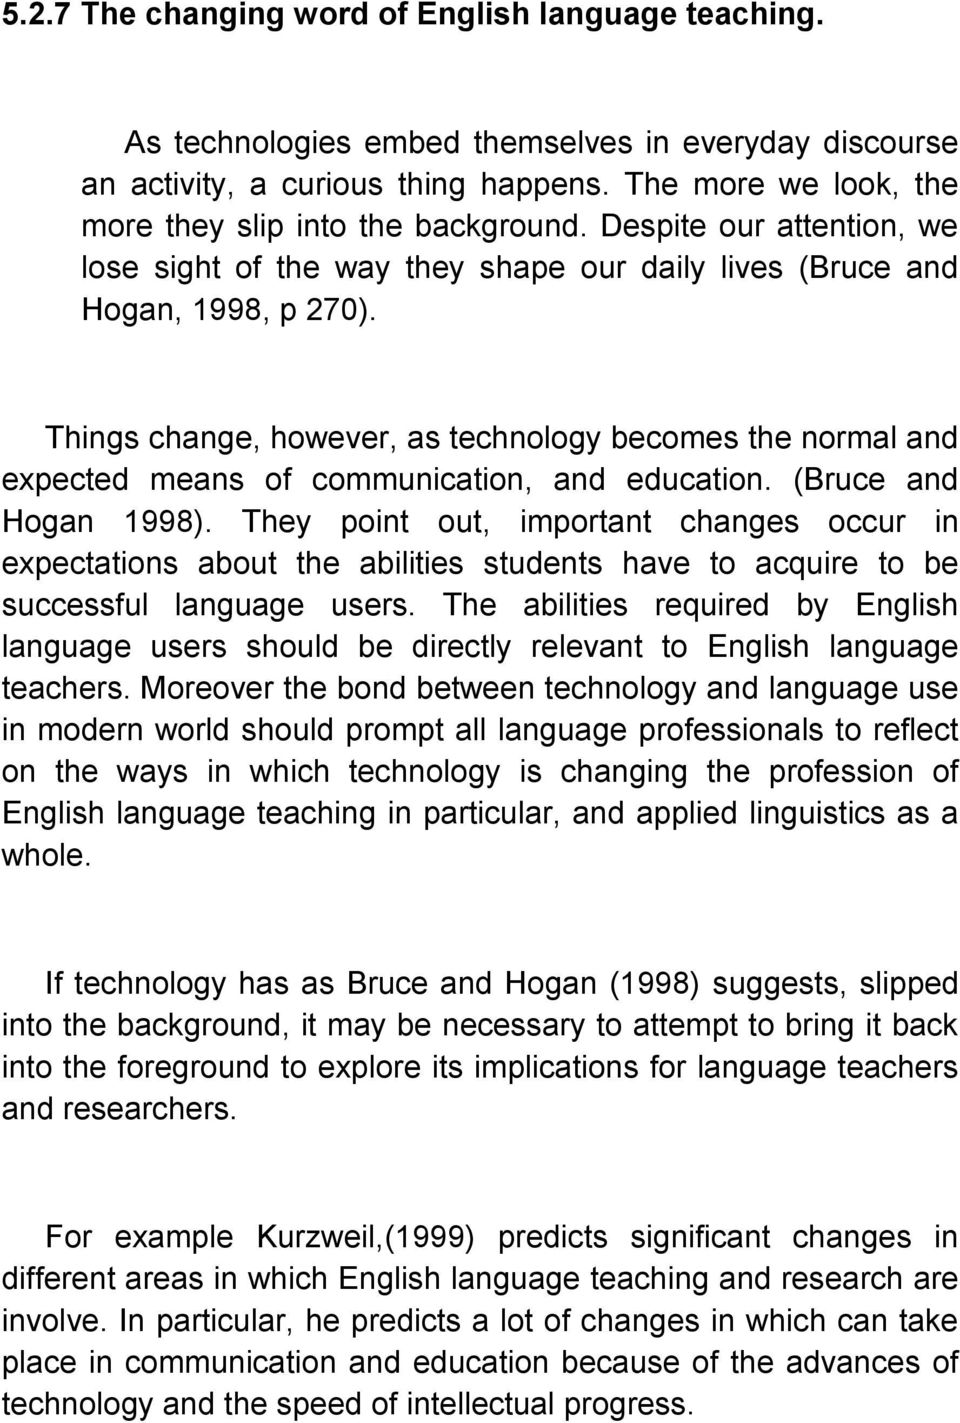 Things change, however, as technology becomes the normal and expected means of communication, and education. (Bruce and Hogan 1998).